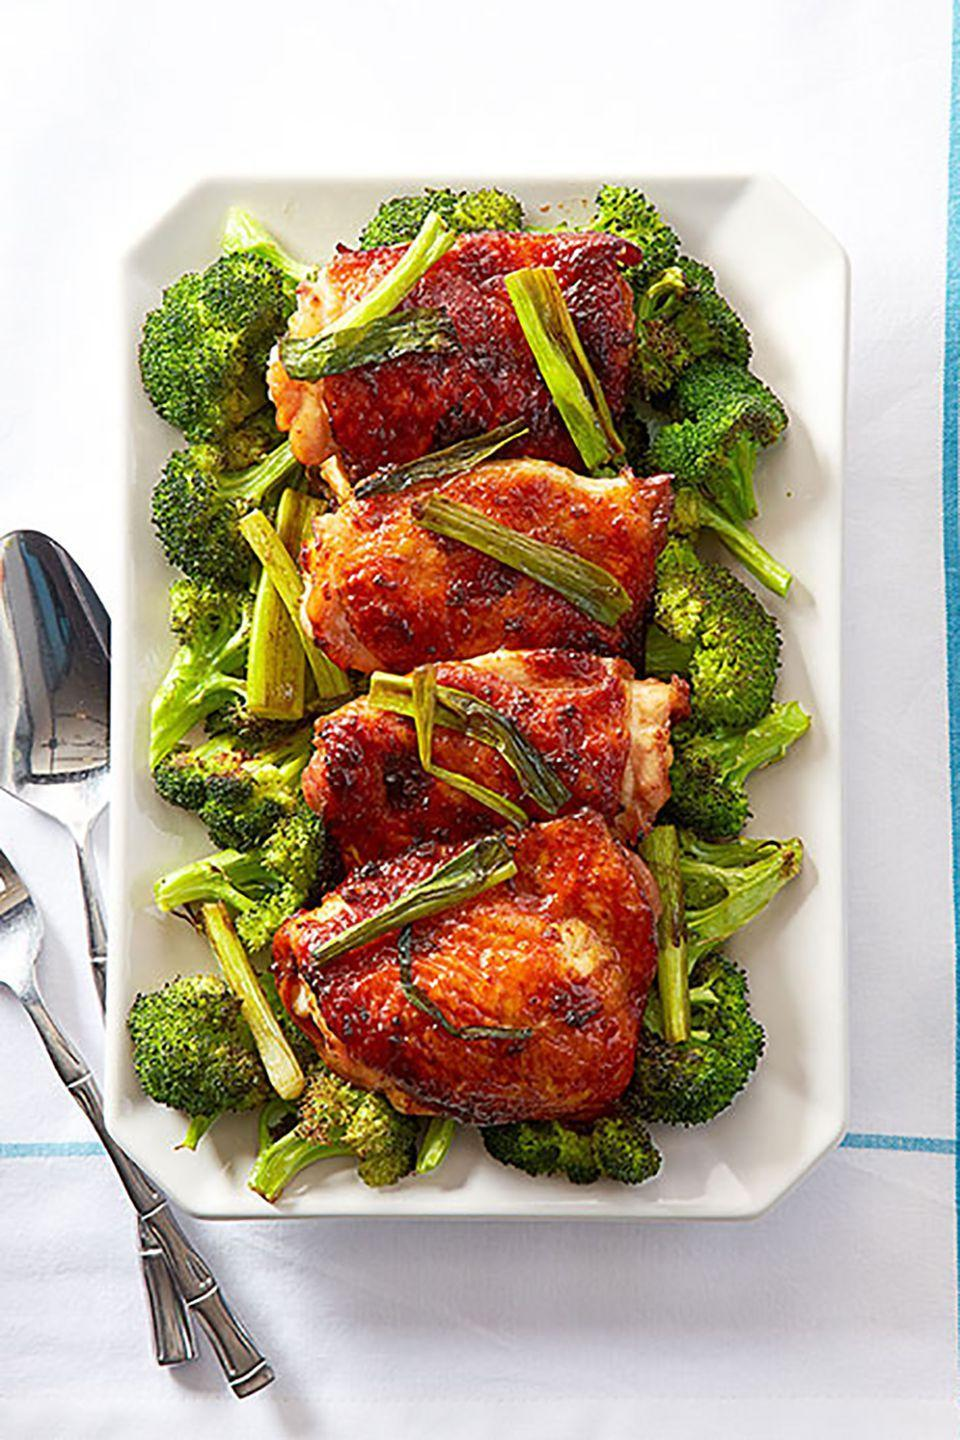 """<p>A glaze of soy and honey gives this dish its rich color and caramelized flavor.</p><p><strong><a href=""""https://www.countryliving.com/food-drinks/recipes/a24567/mahogany-chicken-broccoli-recipe-ghk0315/"""" rel=""""nofollow noopener"""" target=""""_blank"""" data-ylk=""""slk:Get the recipe"""" class=""""link rapid-noclick-resp"""">Get the recipe</a>.</strong> </p>"""